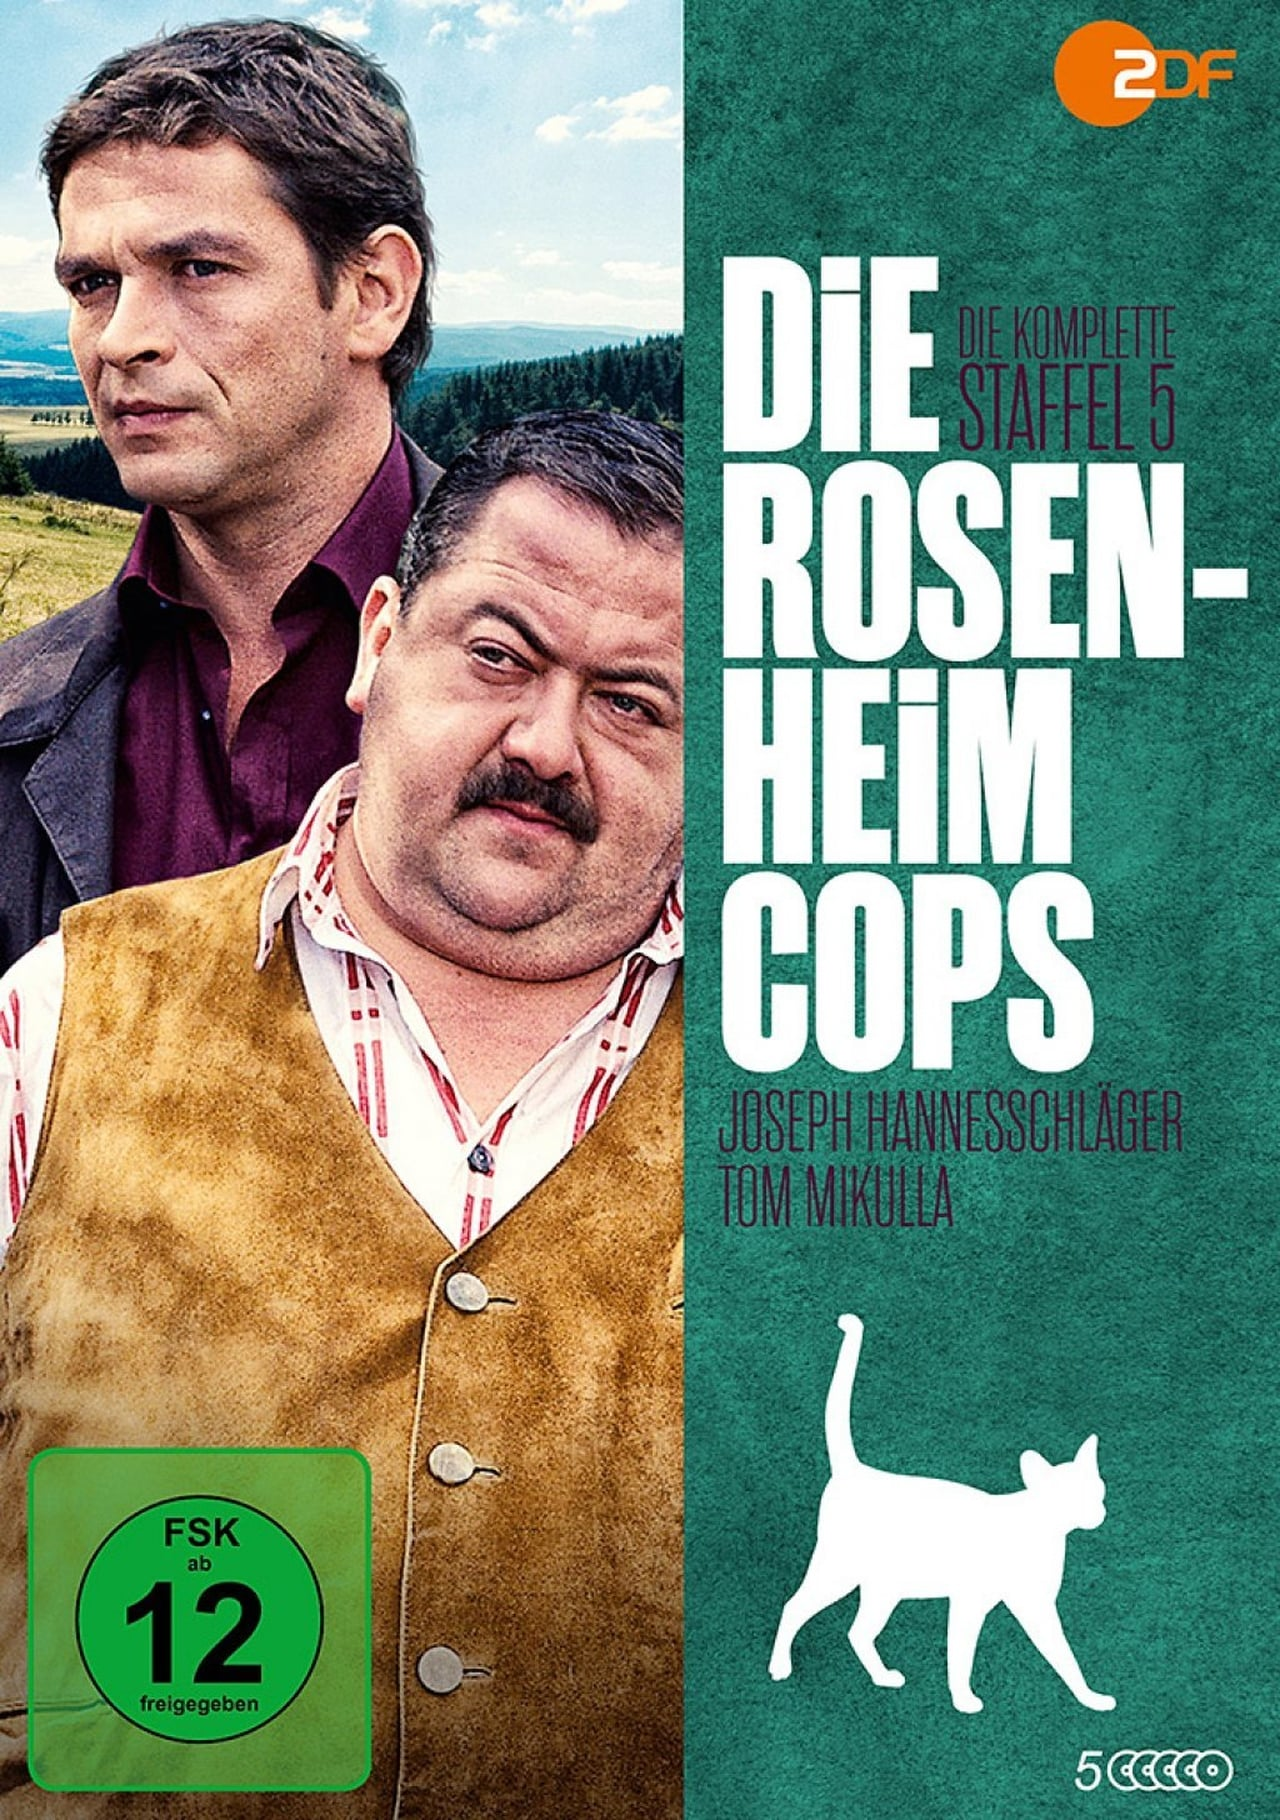 Watch The Rosenheim Cops Season 5 Online